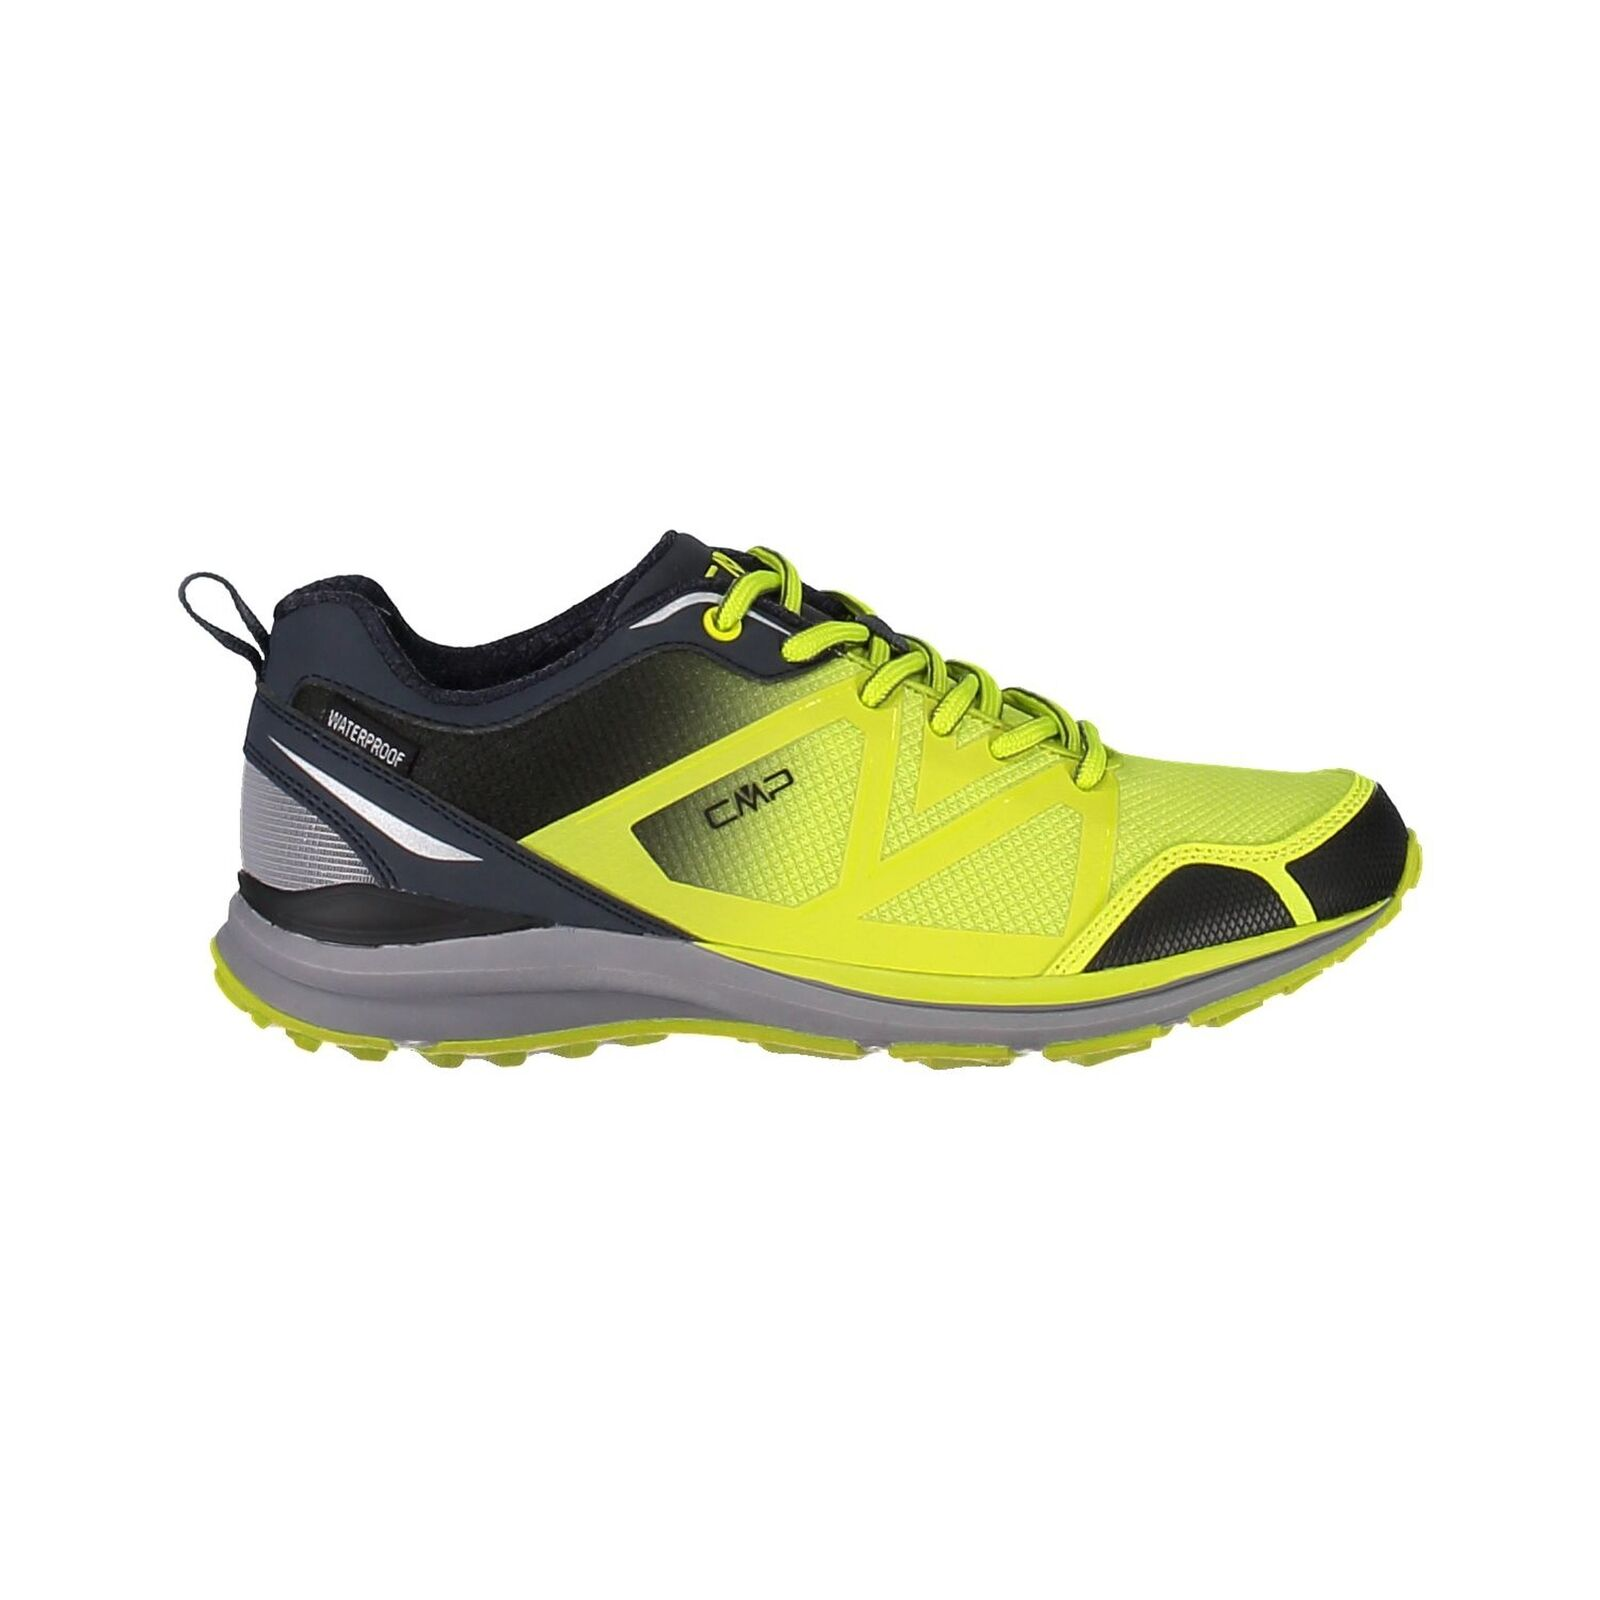 CMP Running Sports shoes Alya Women's Trail shoes Wp Light Green Plain Colour